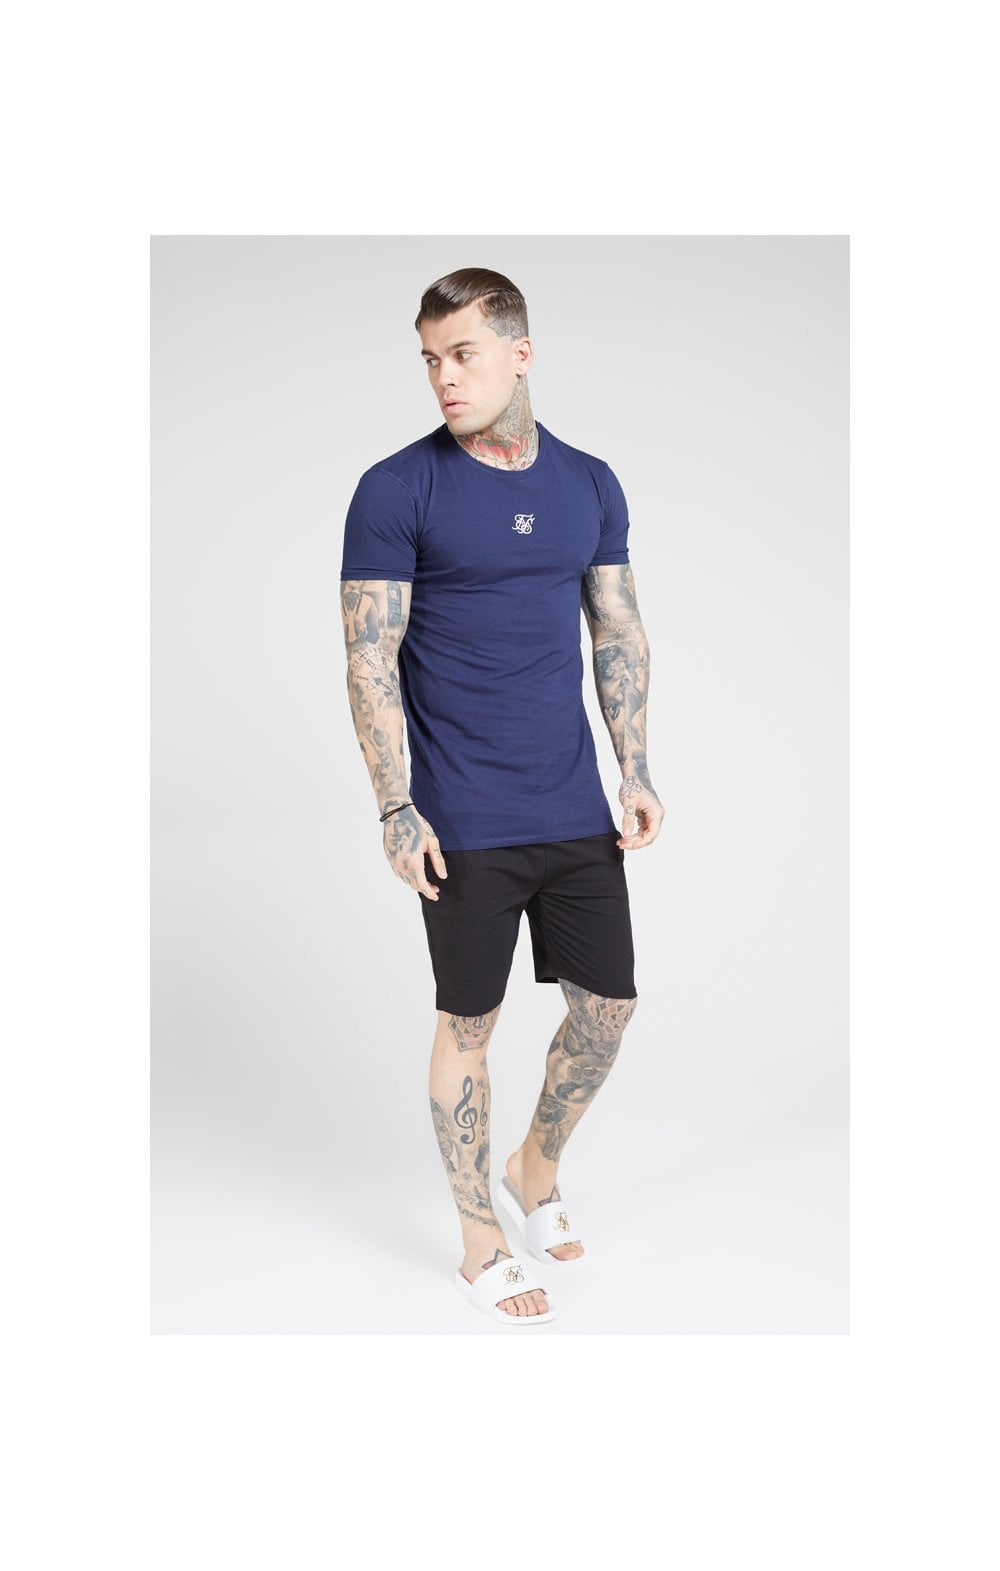 SikSilk Lounge Tee - White & Navy (2 Pack) - 1 White Tee & 1 Navy Tee (2)